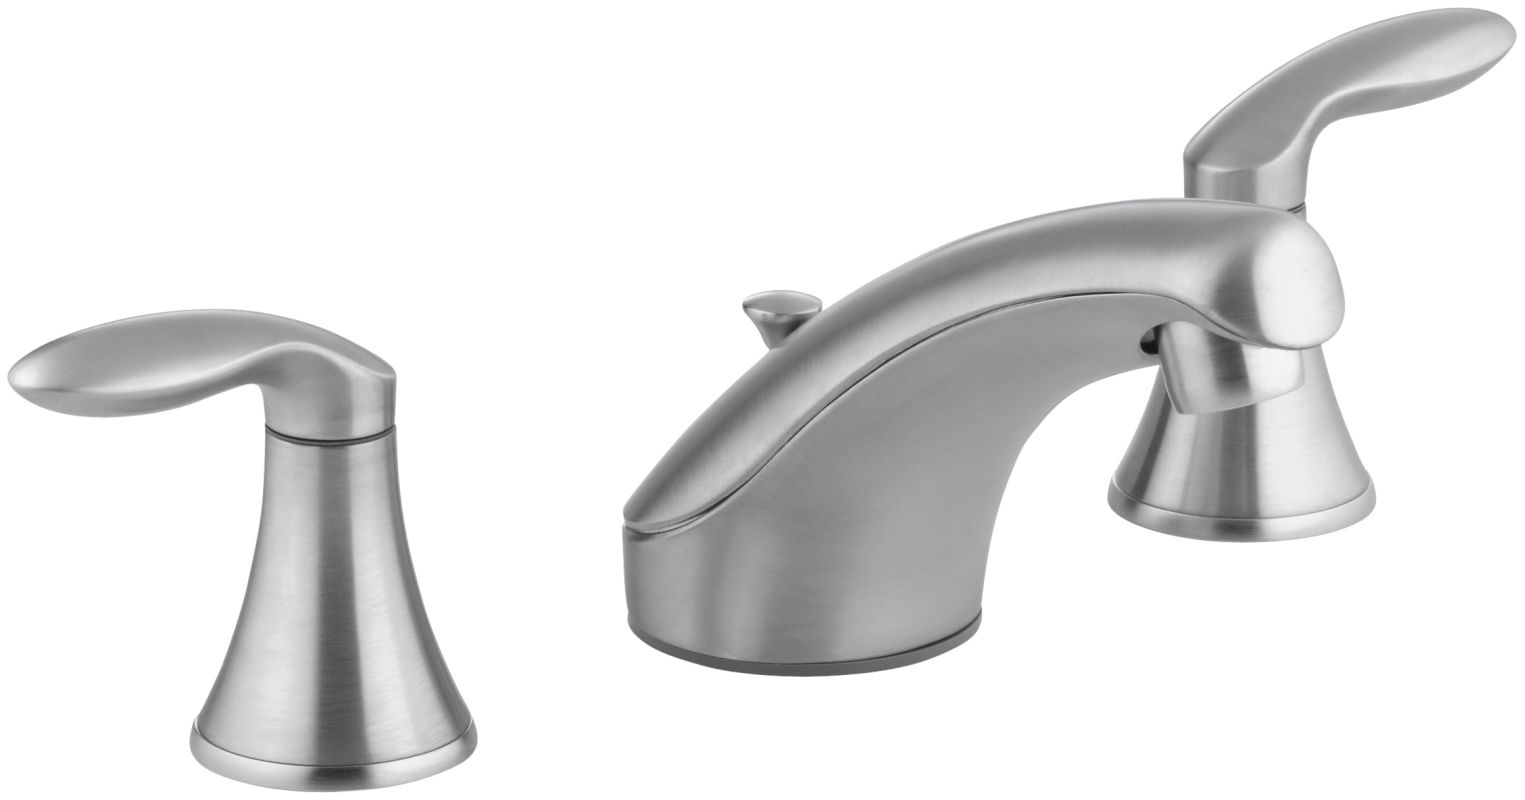 Kohler Coralais Bathroom Faucet - Click to view larger image